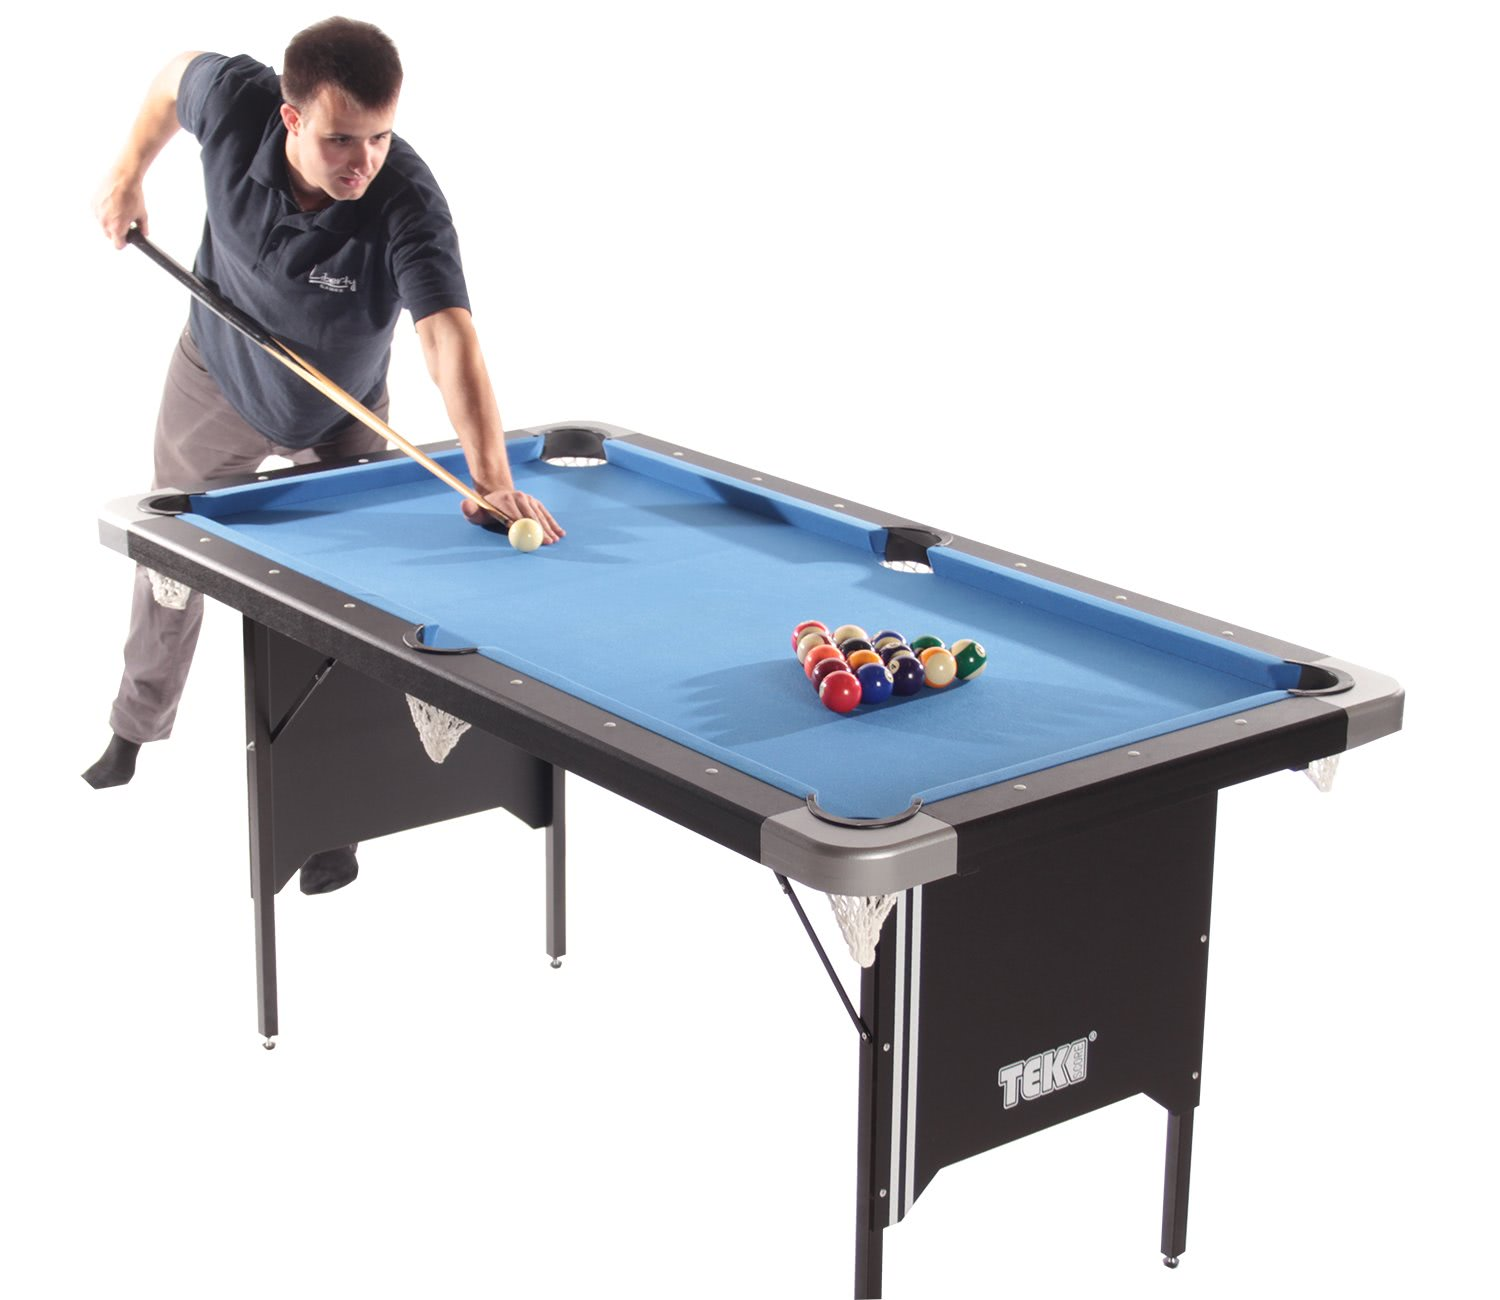 Tekscore folding leg pool table with table tennis top - Pool table images ...